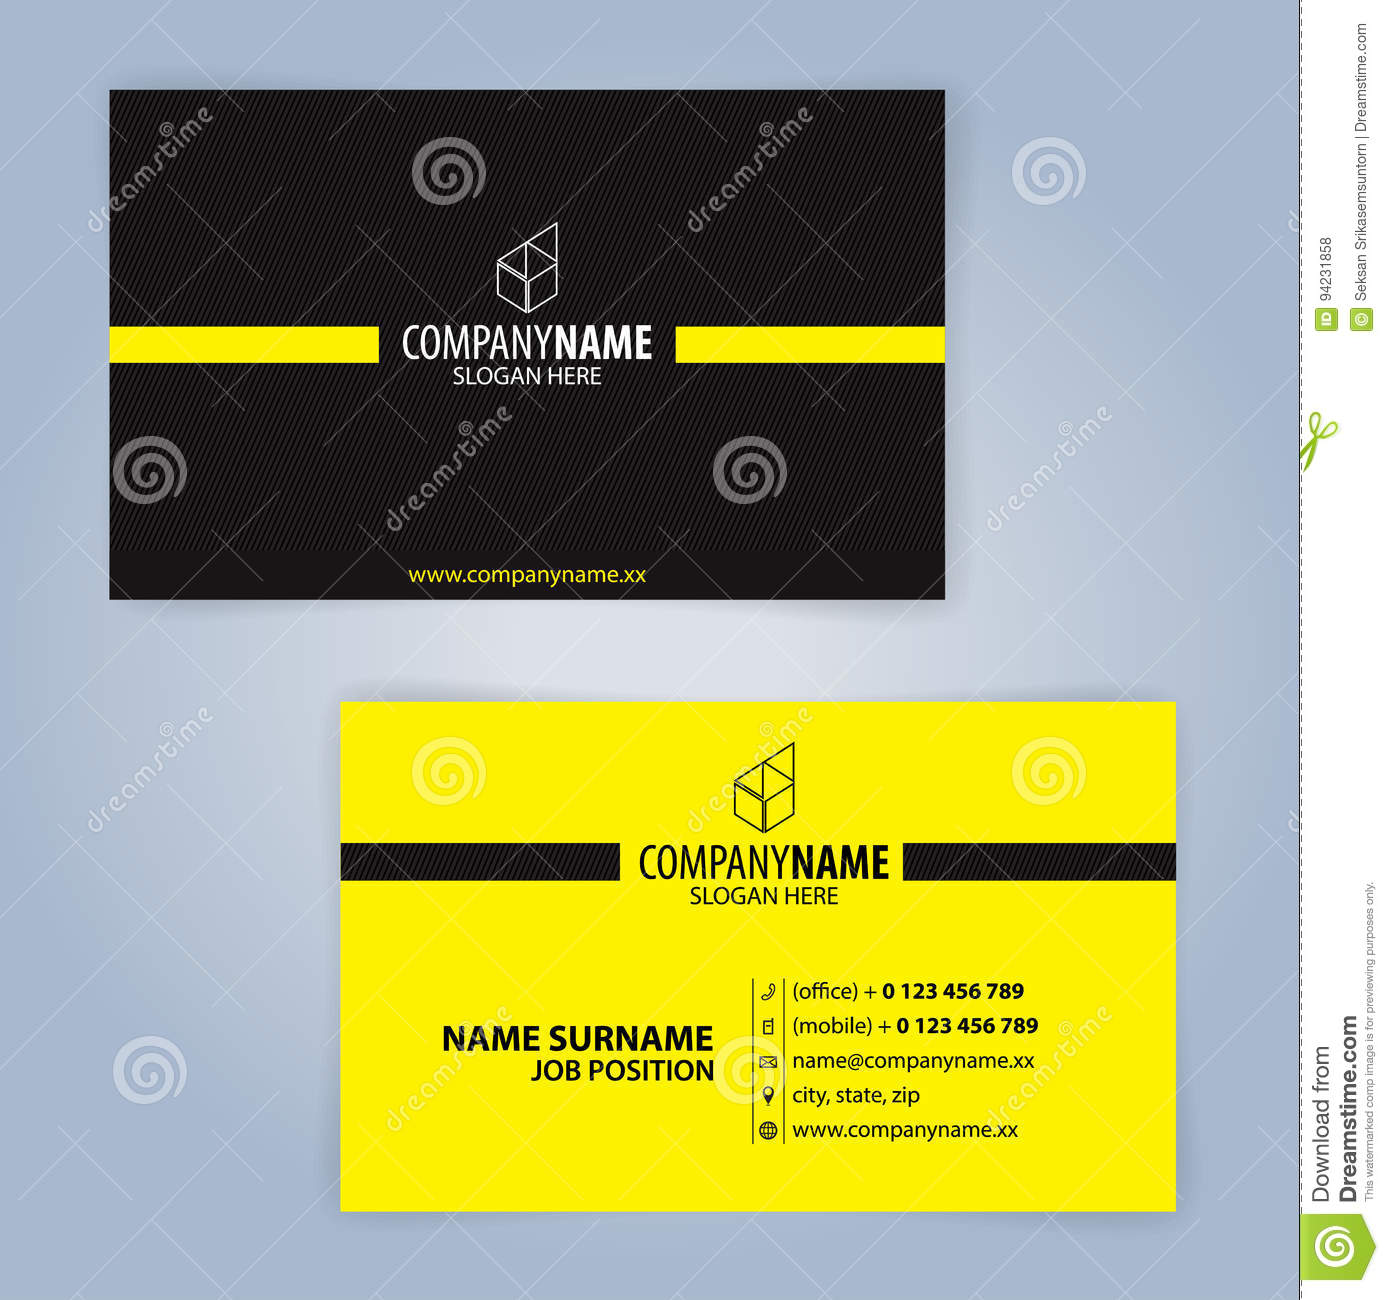 Download Carte De Visite Professionnelle Jaune Et Noir Illustration Vecteur